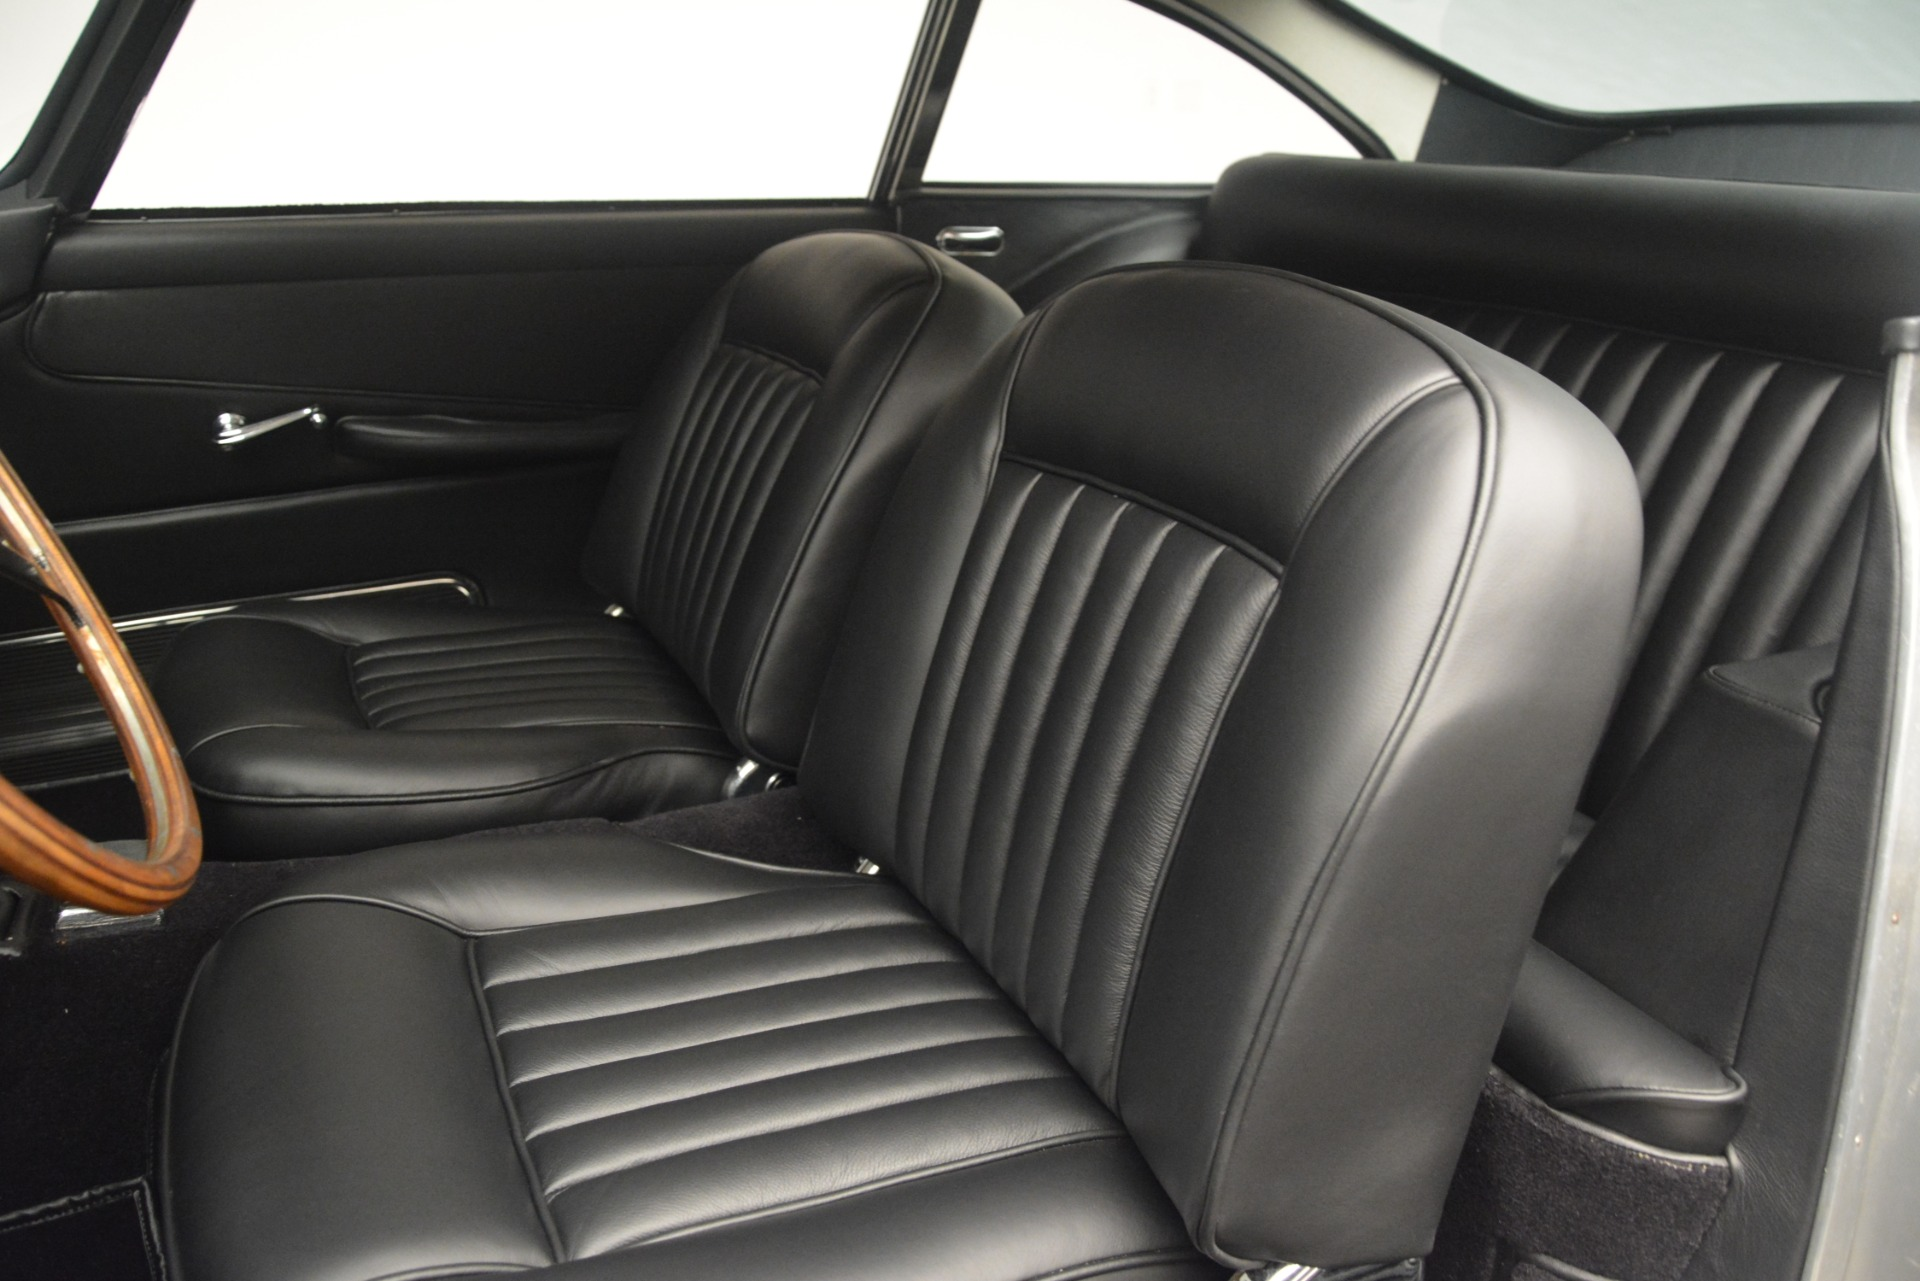 Used 1961 Aston Martin DB4 Series IV Coupe For Sale In Westport, CT 3186_p22